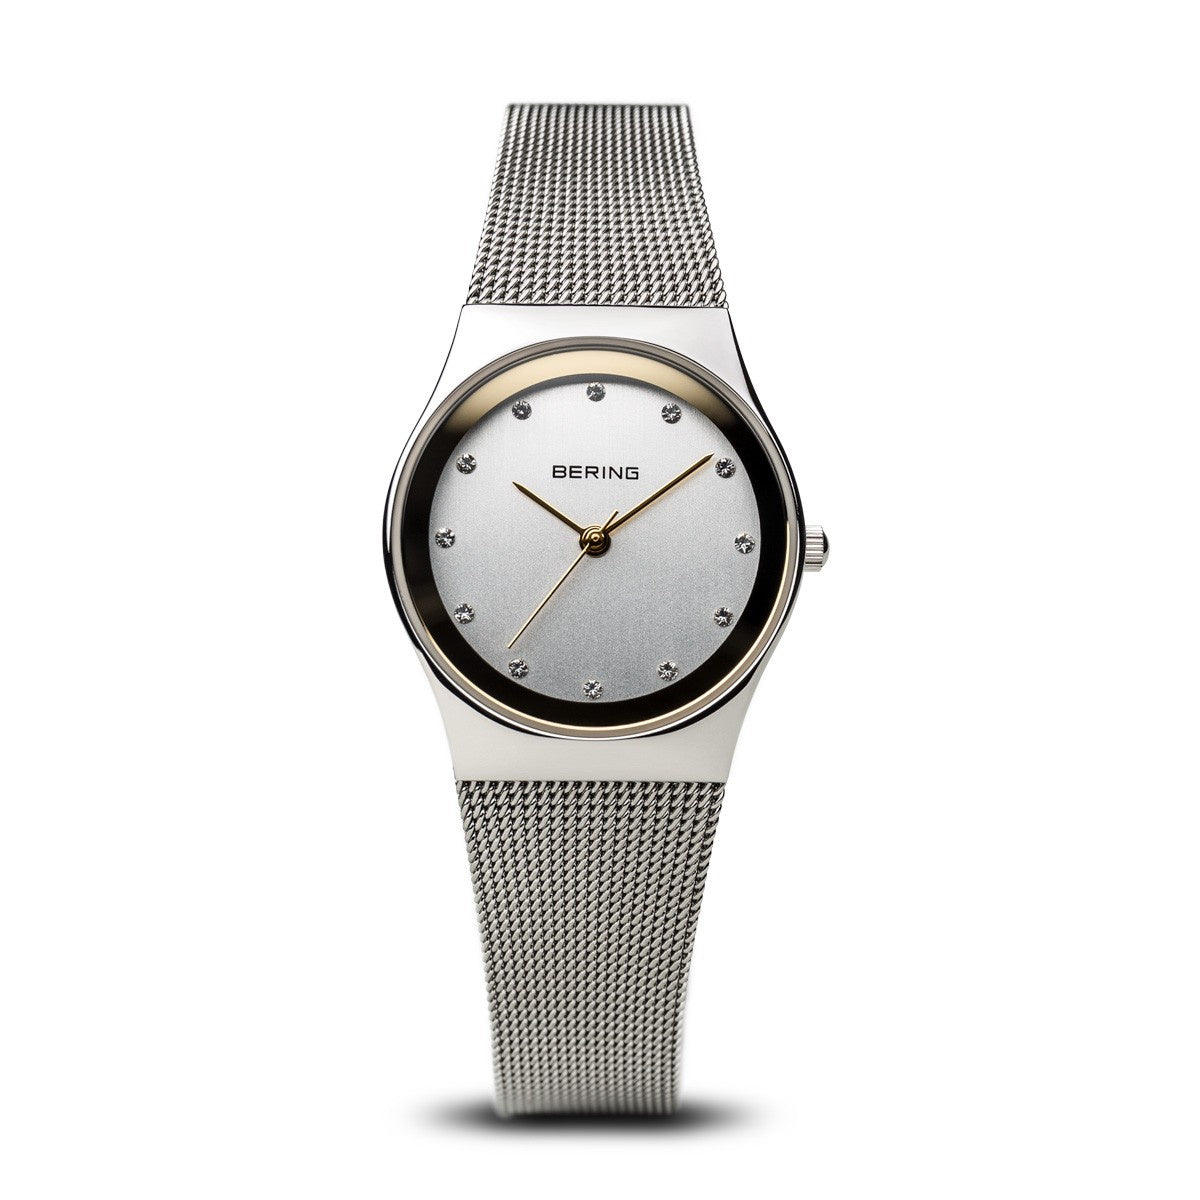 Bering Womens Classic Polished Silver Watch 12927-010 - Robert Openshaw Fine Jewellery